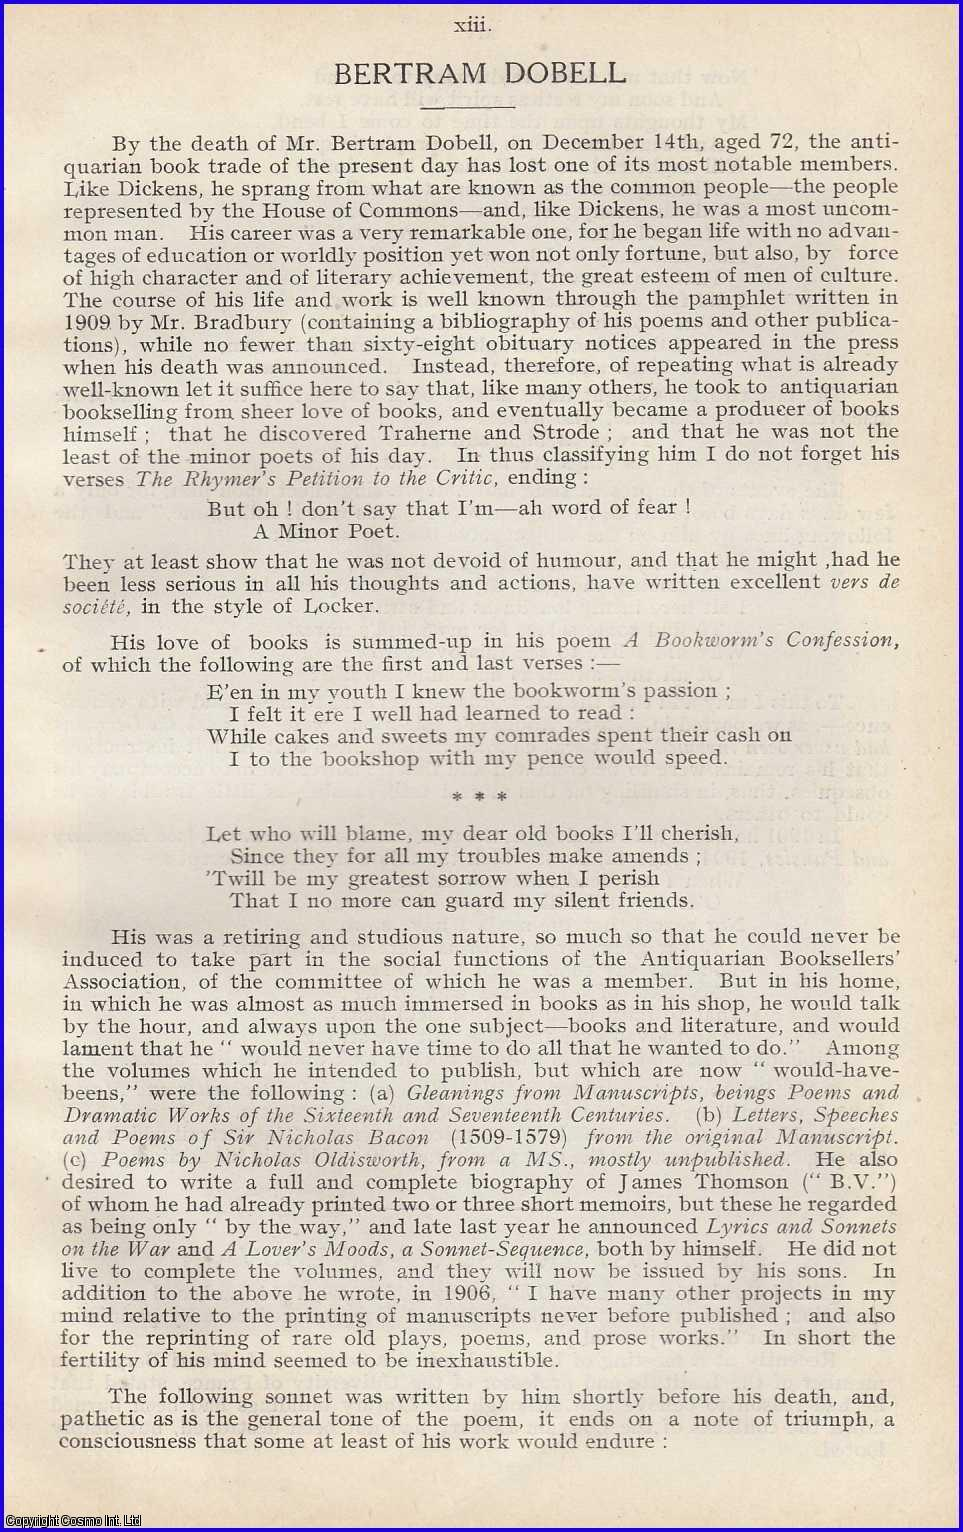 KERSLAKE, FRANK - Bertram Dobell A rare original article from the Book Auction Records, 1915.